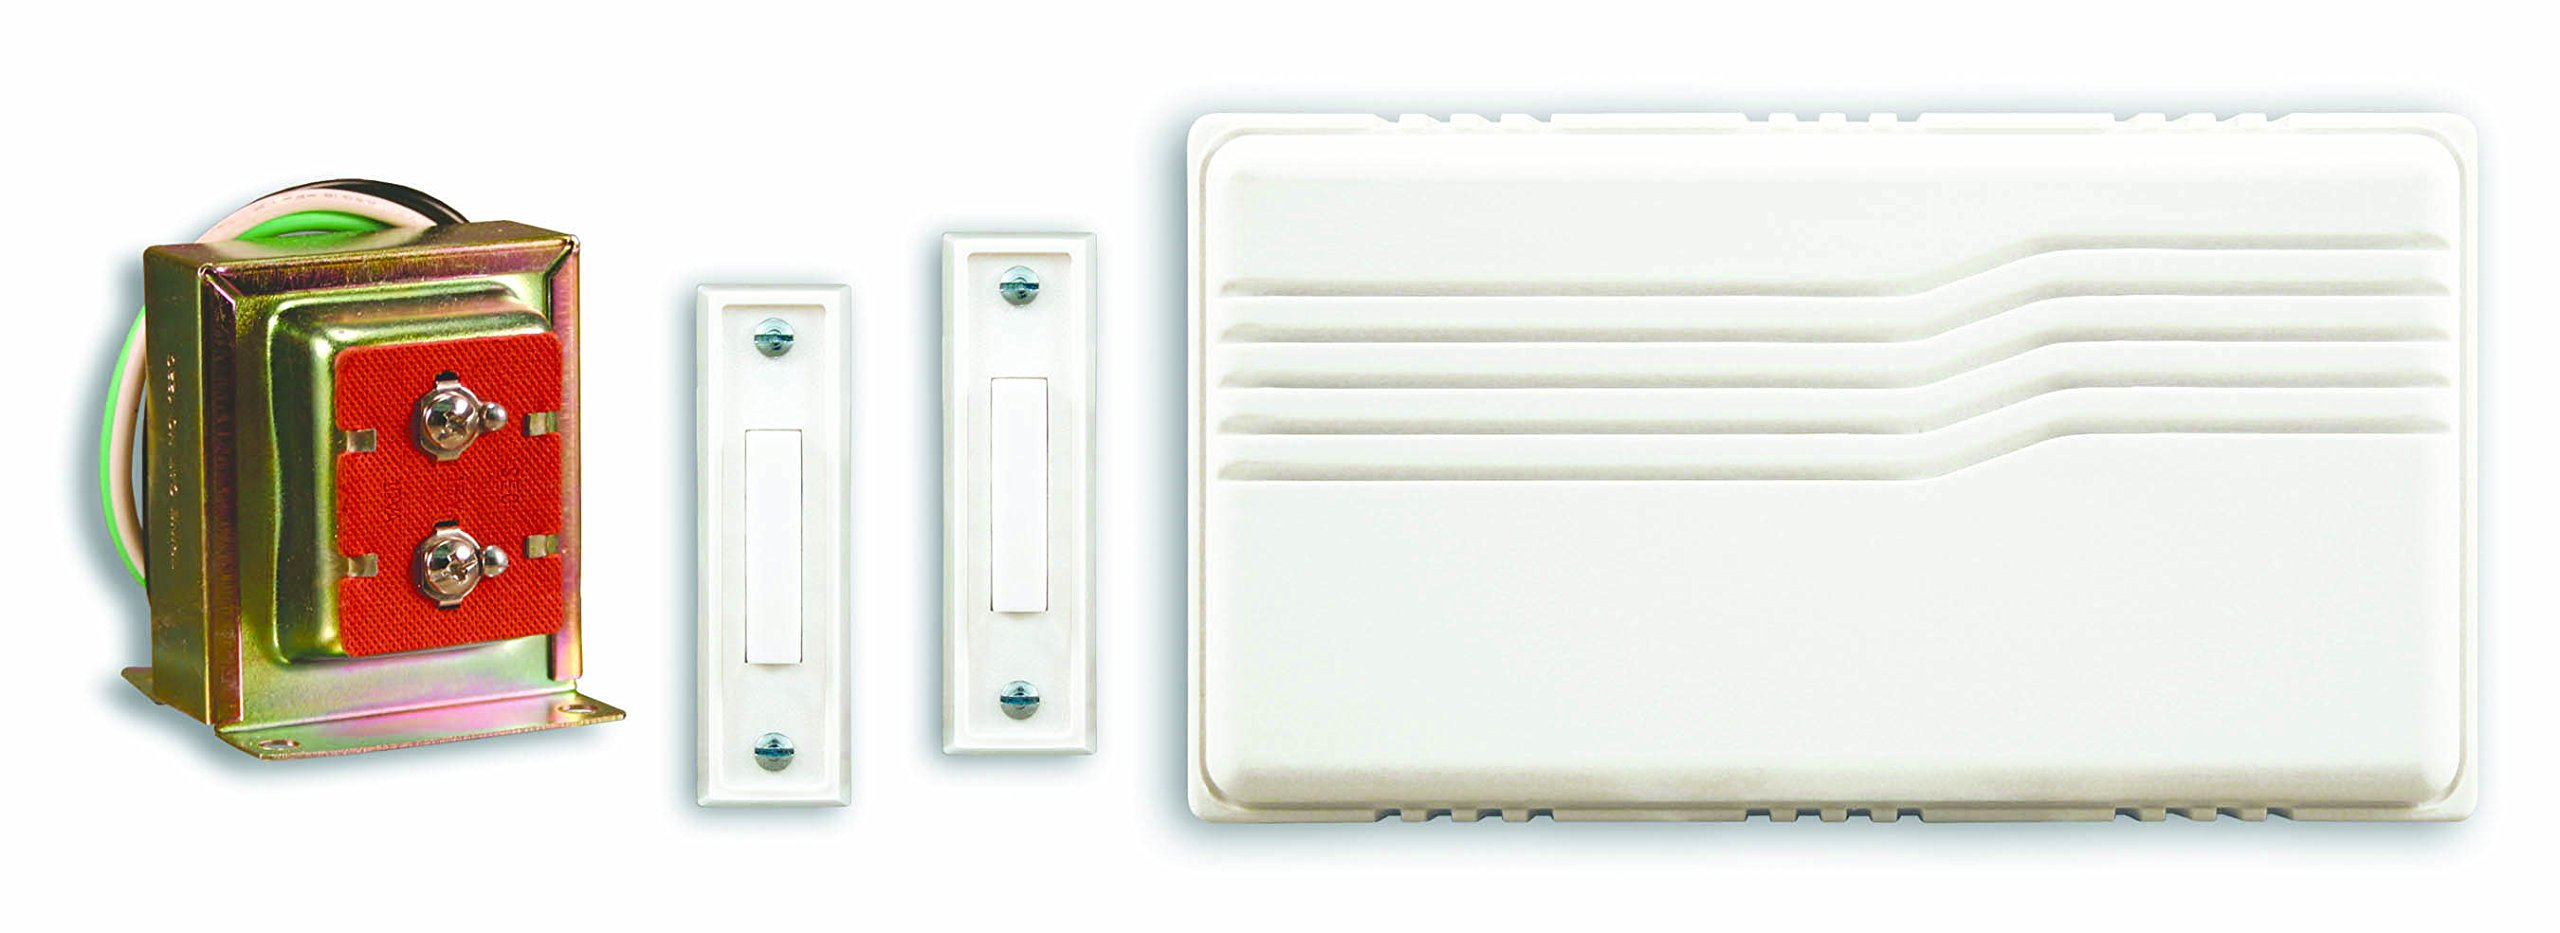 Heath Zenith 102-A Wired Door Chime Contractor Kit with Mixed Push Buttons, White